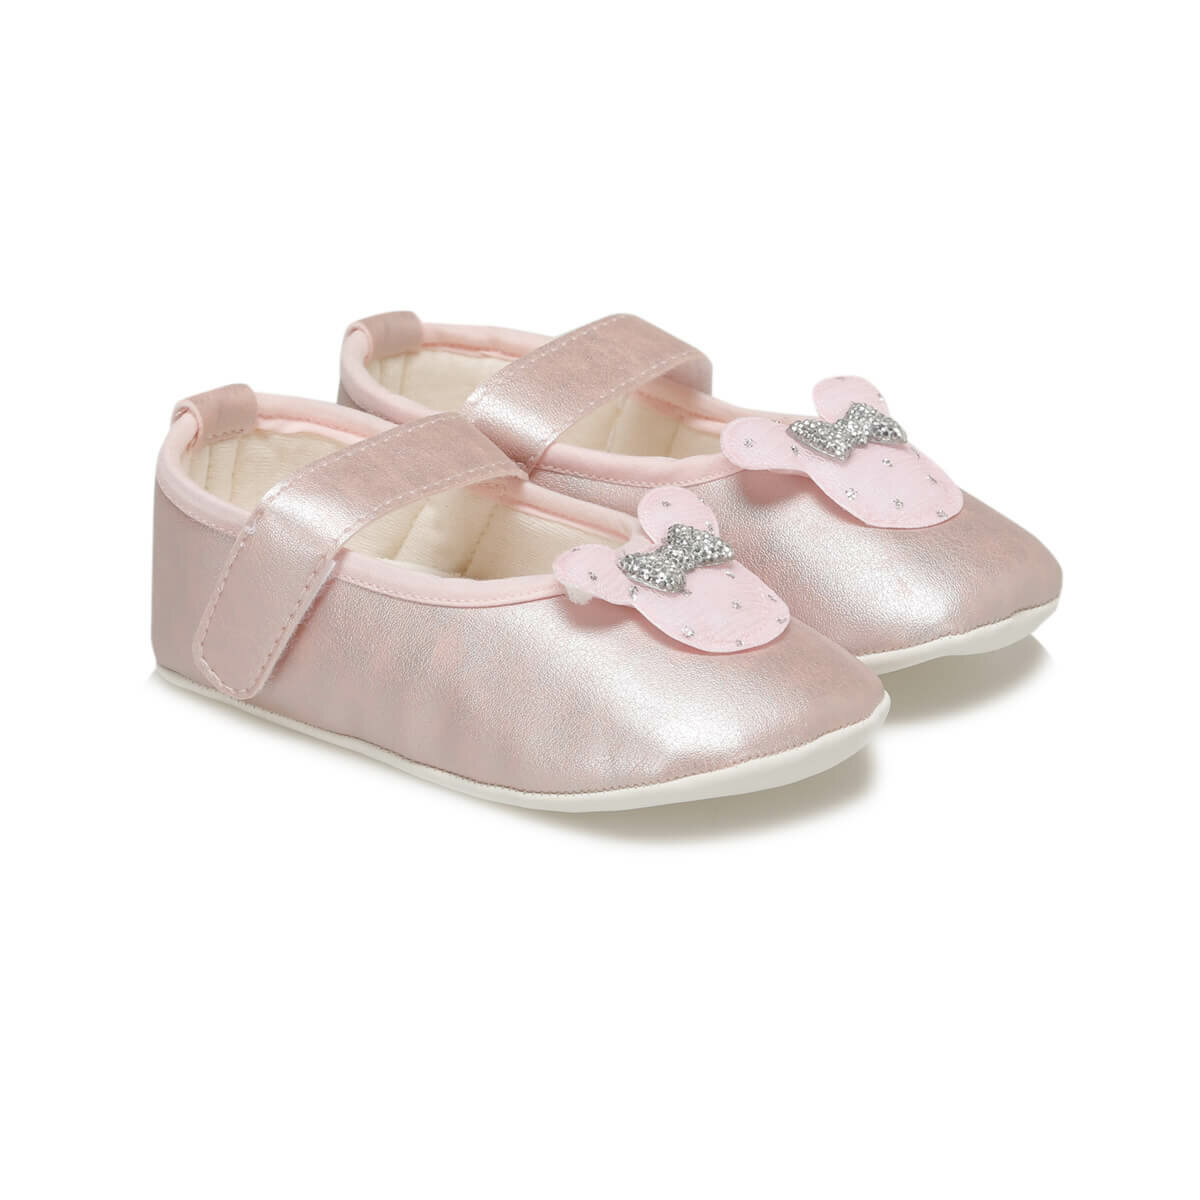 FLO 1242 Pink Female Child Shoes MINITTO